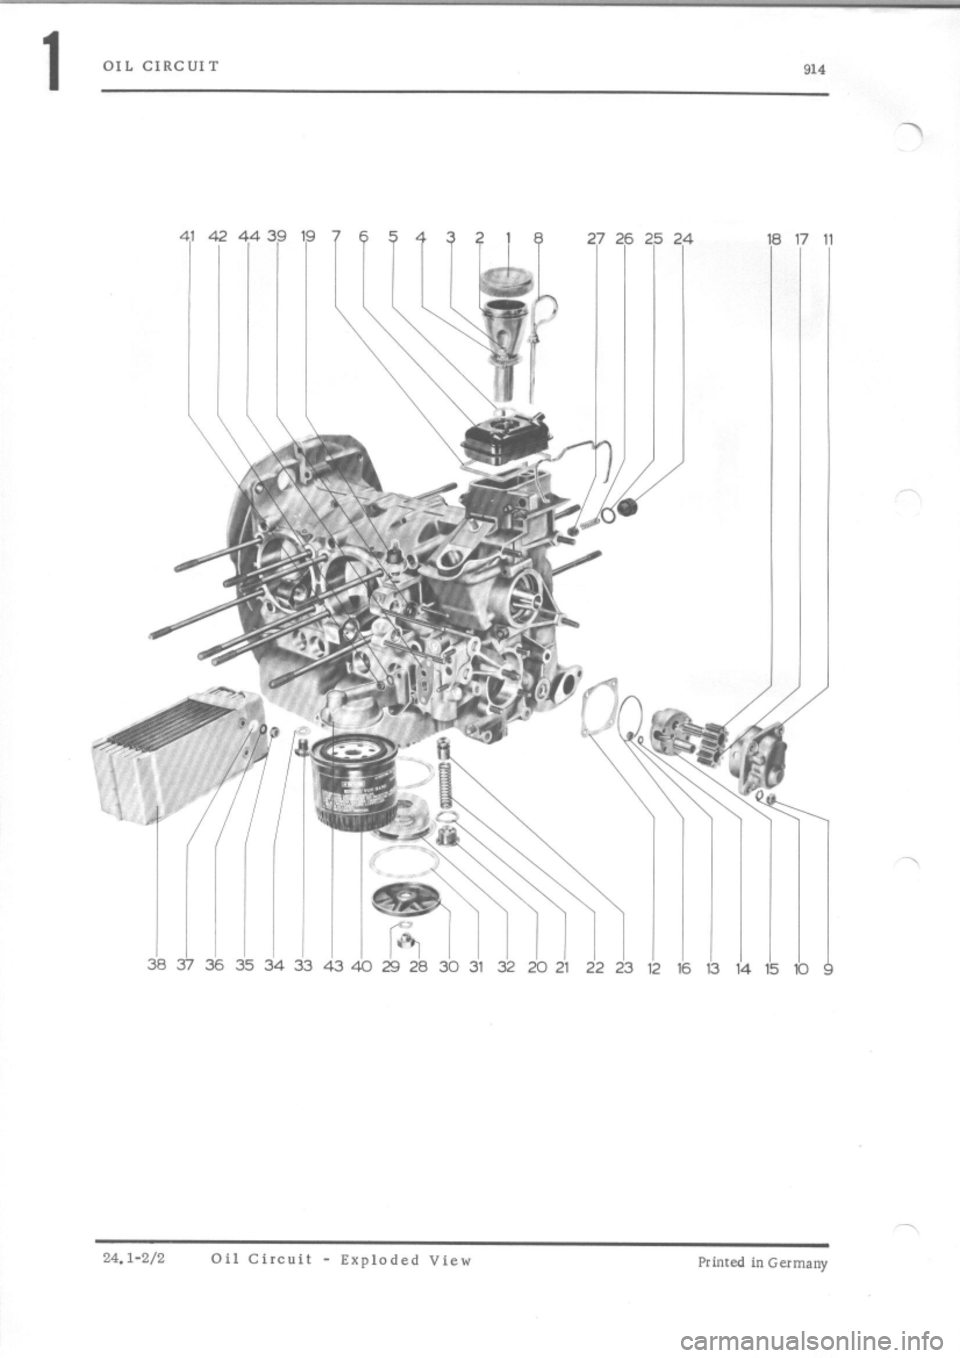 Alternator Wiring Diagram For 2009 Toyota Matrix. Toyota